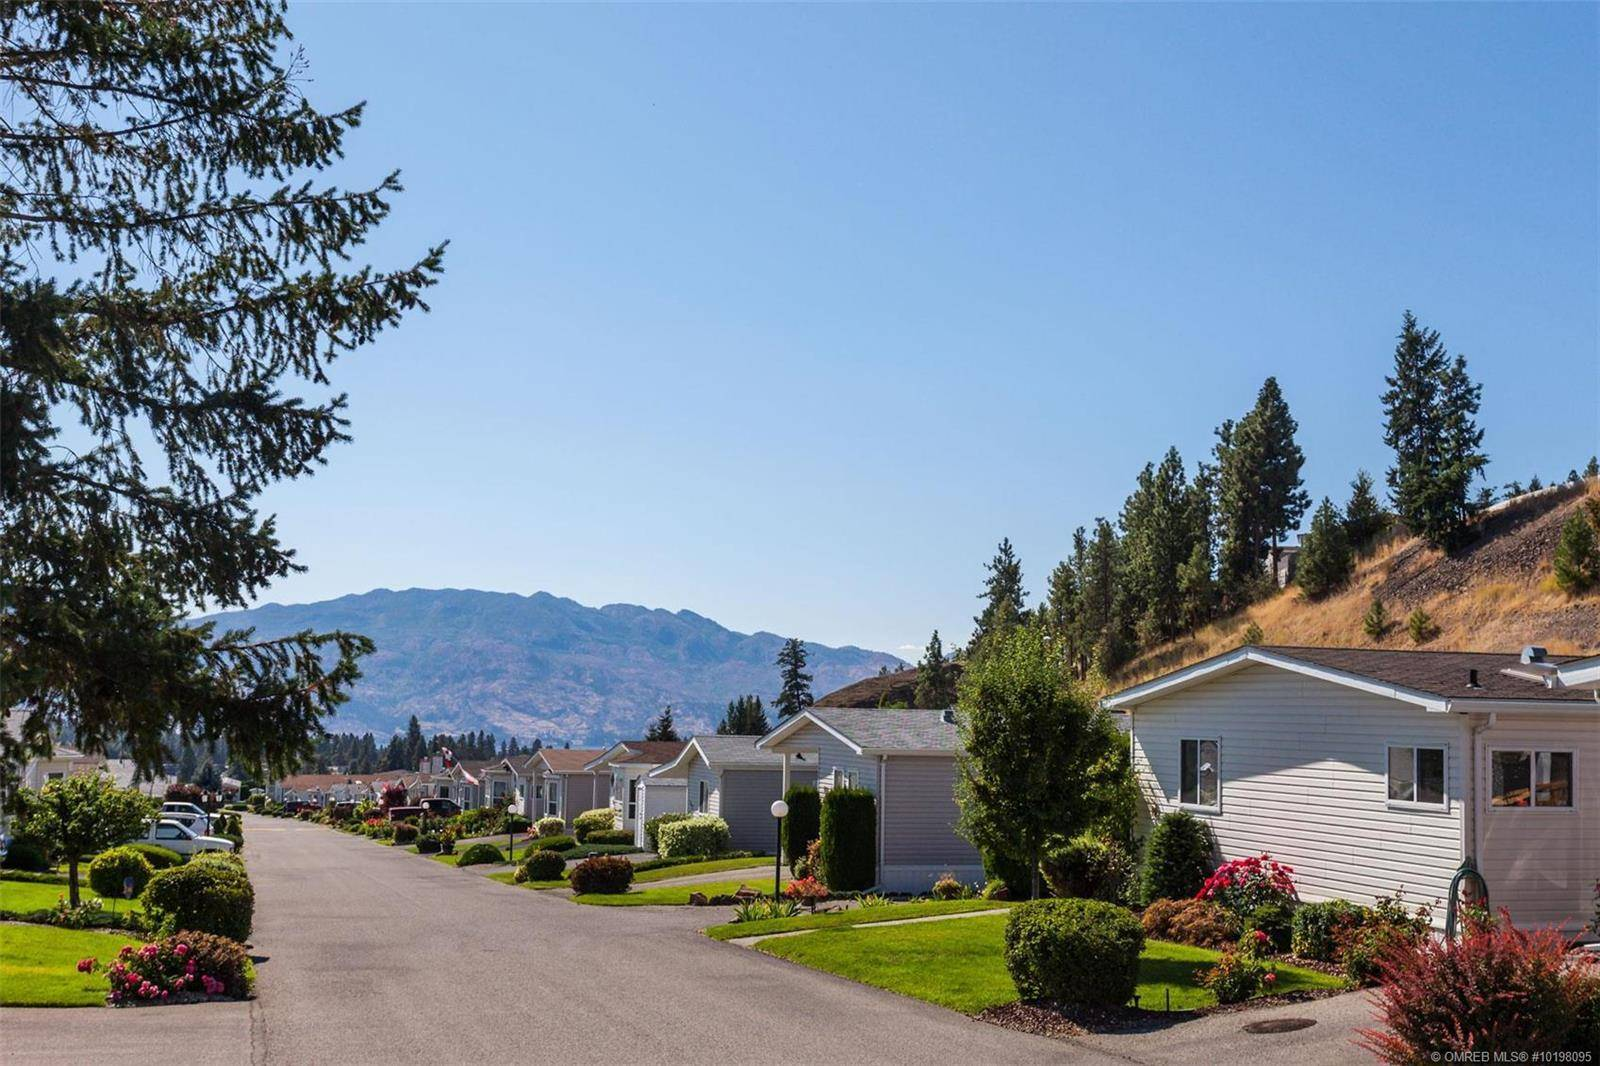 Residential property for sale at 1850 Shannon Lake Rd Unit 129 West Kelowna British Columbia - MLS: 10198095